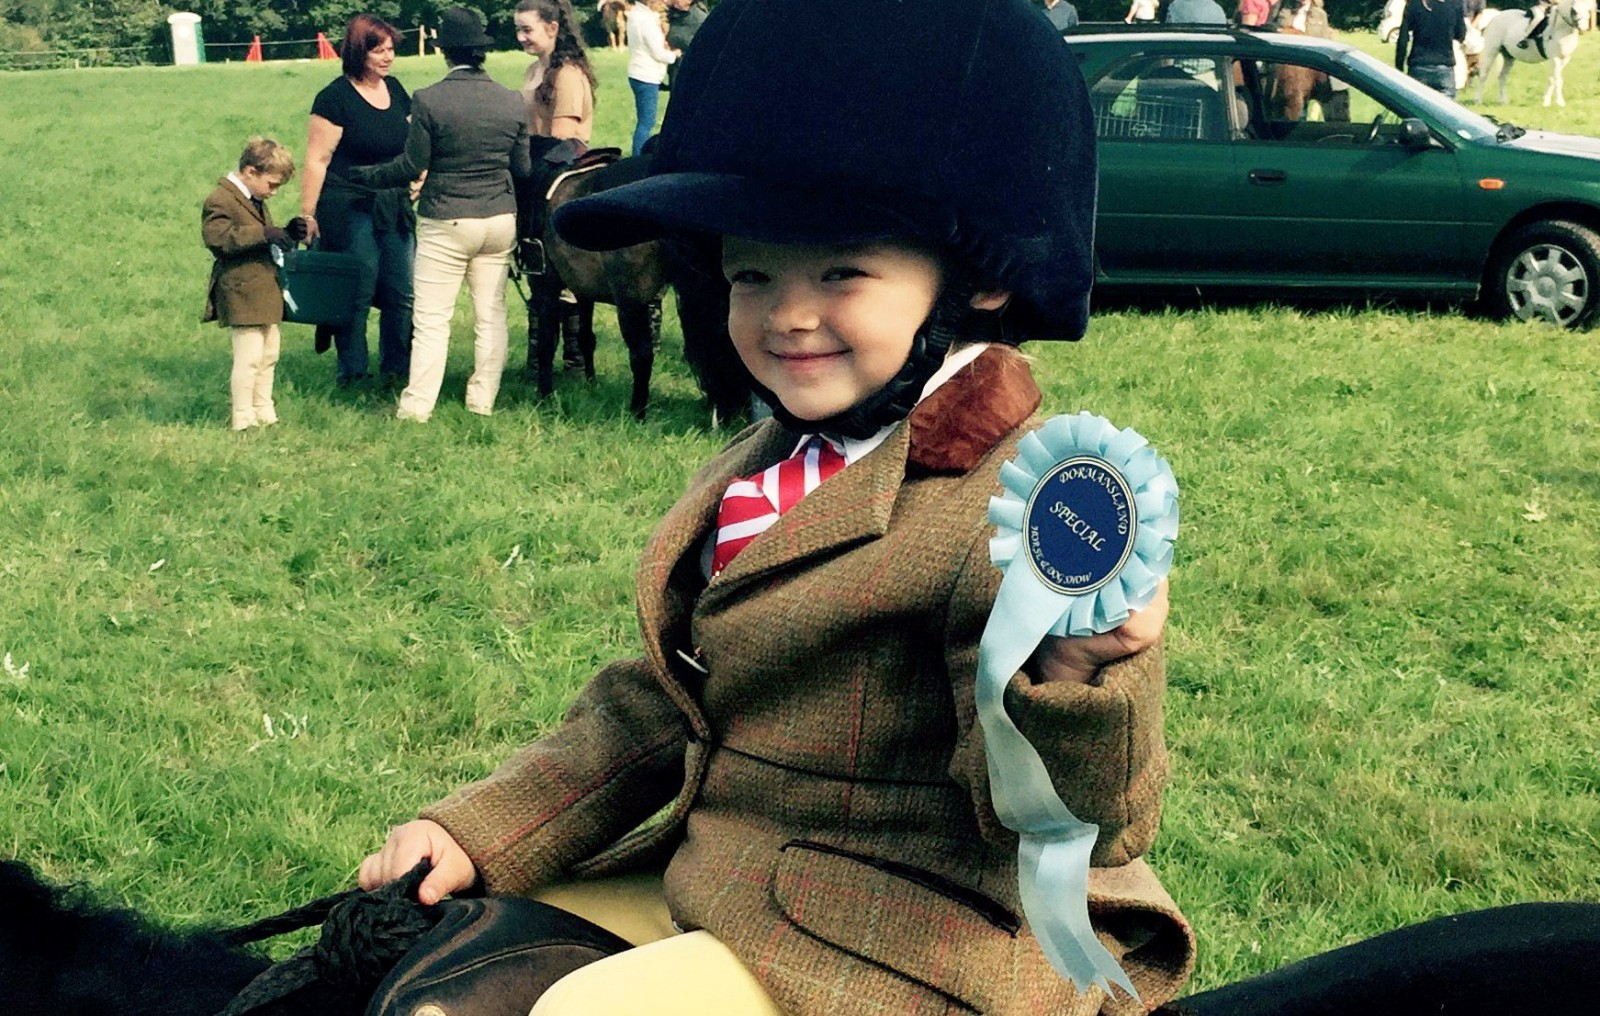 Toddler survives being kicked in the head by a horse